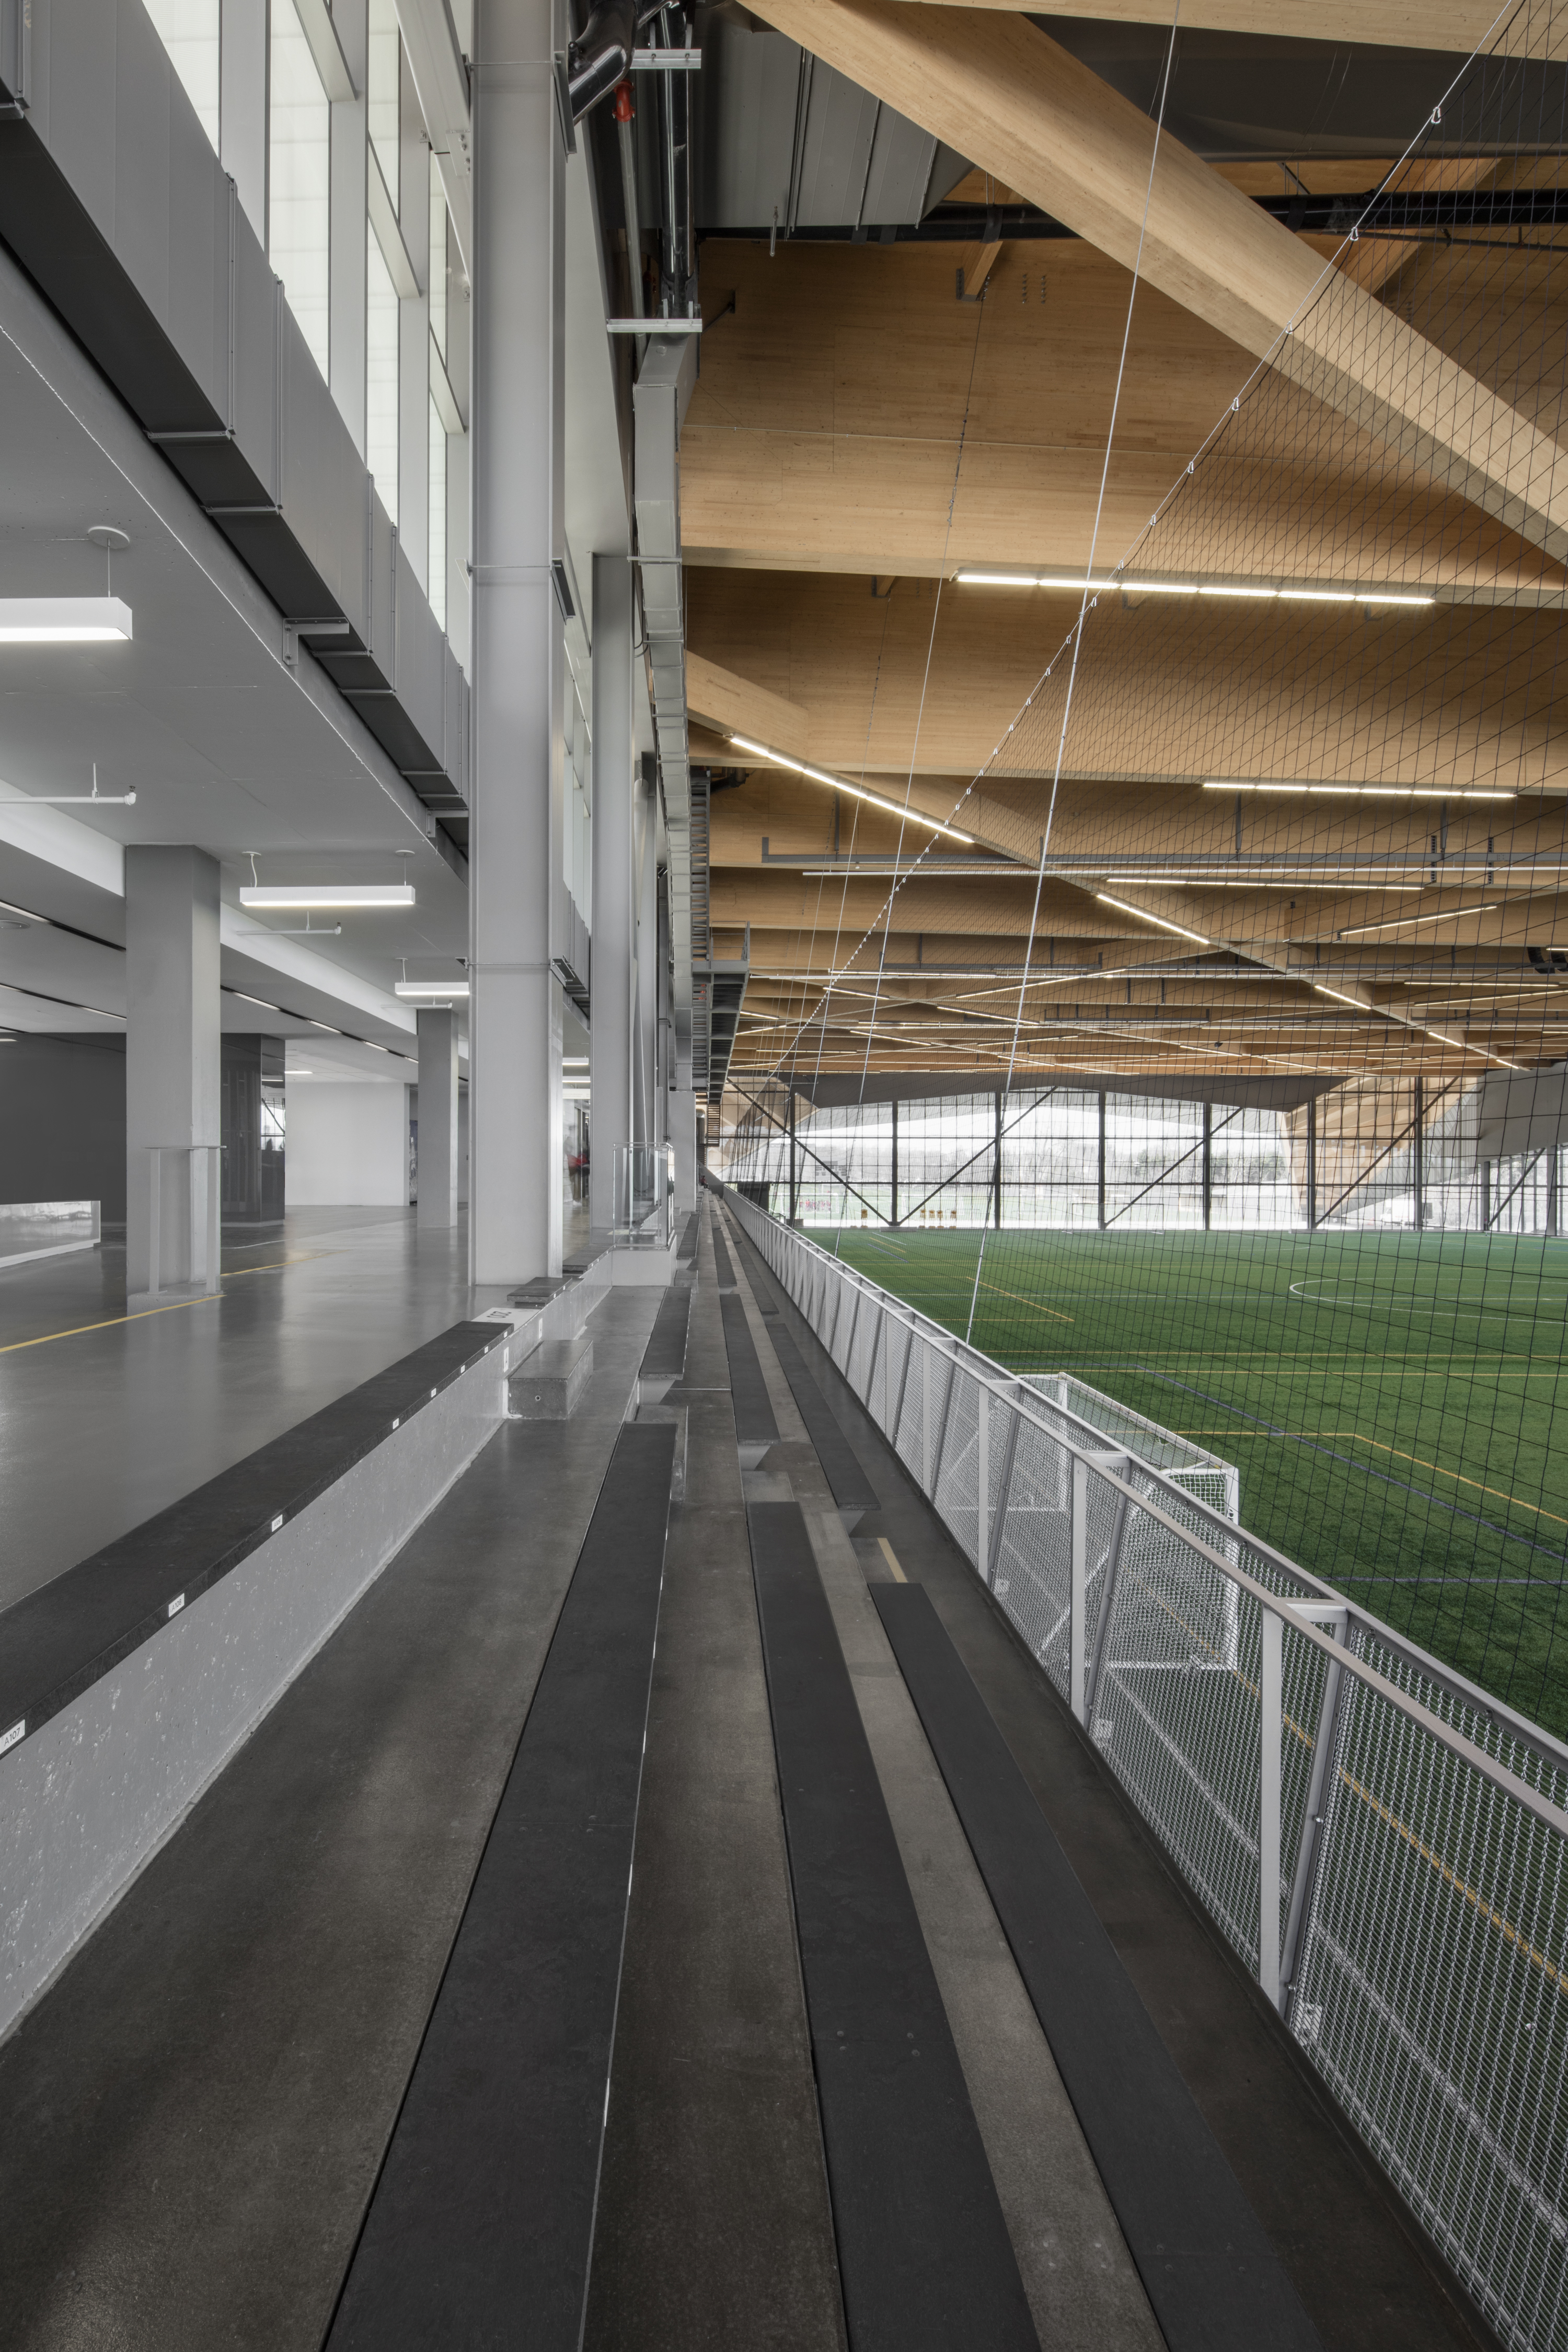 The railing and enclosure spans two stories in the soccer stadium, using M12Z-17 woven wire mesh.